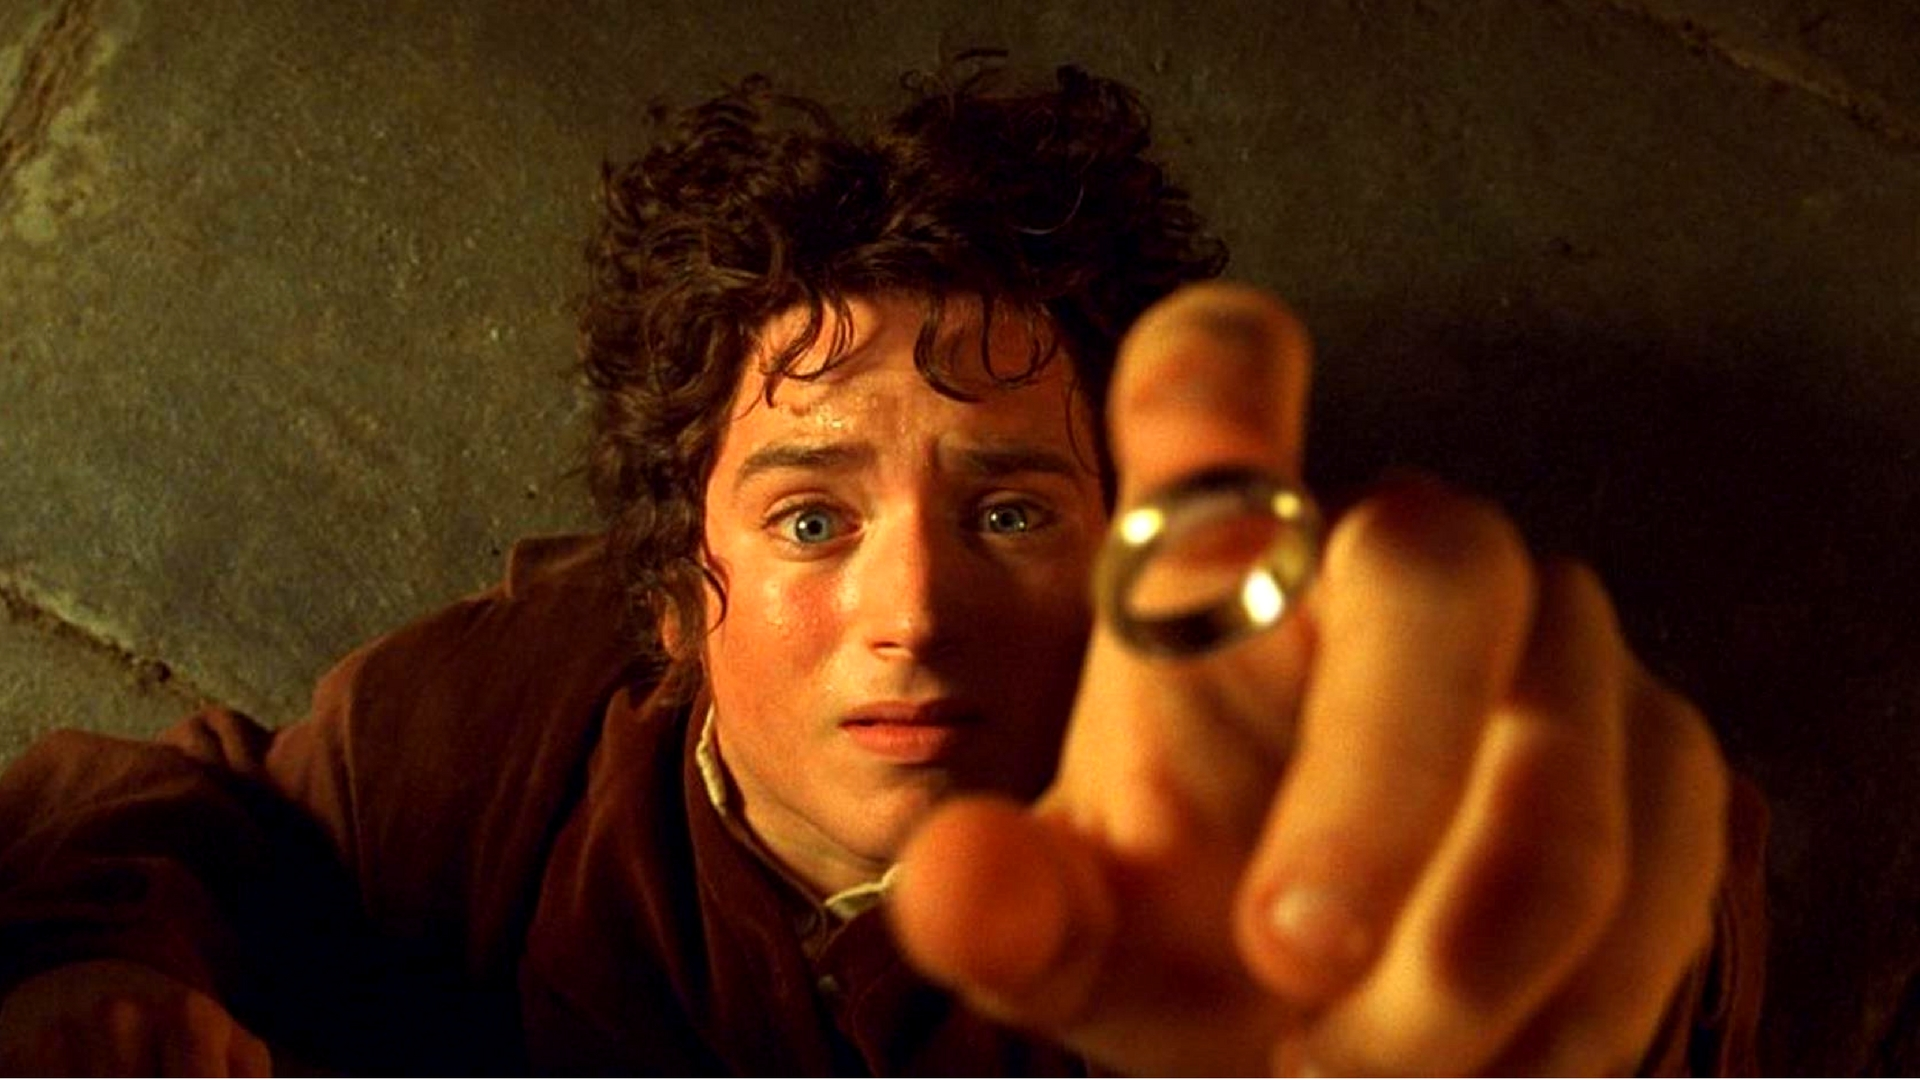 frodo baggins lord of the rings tv show